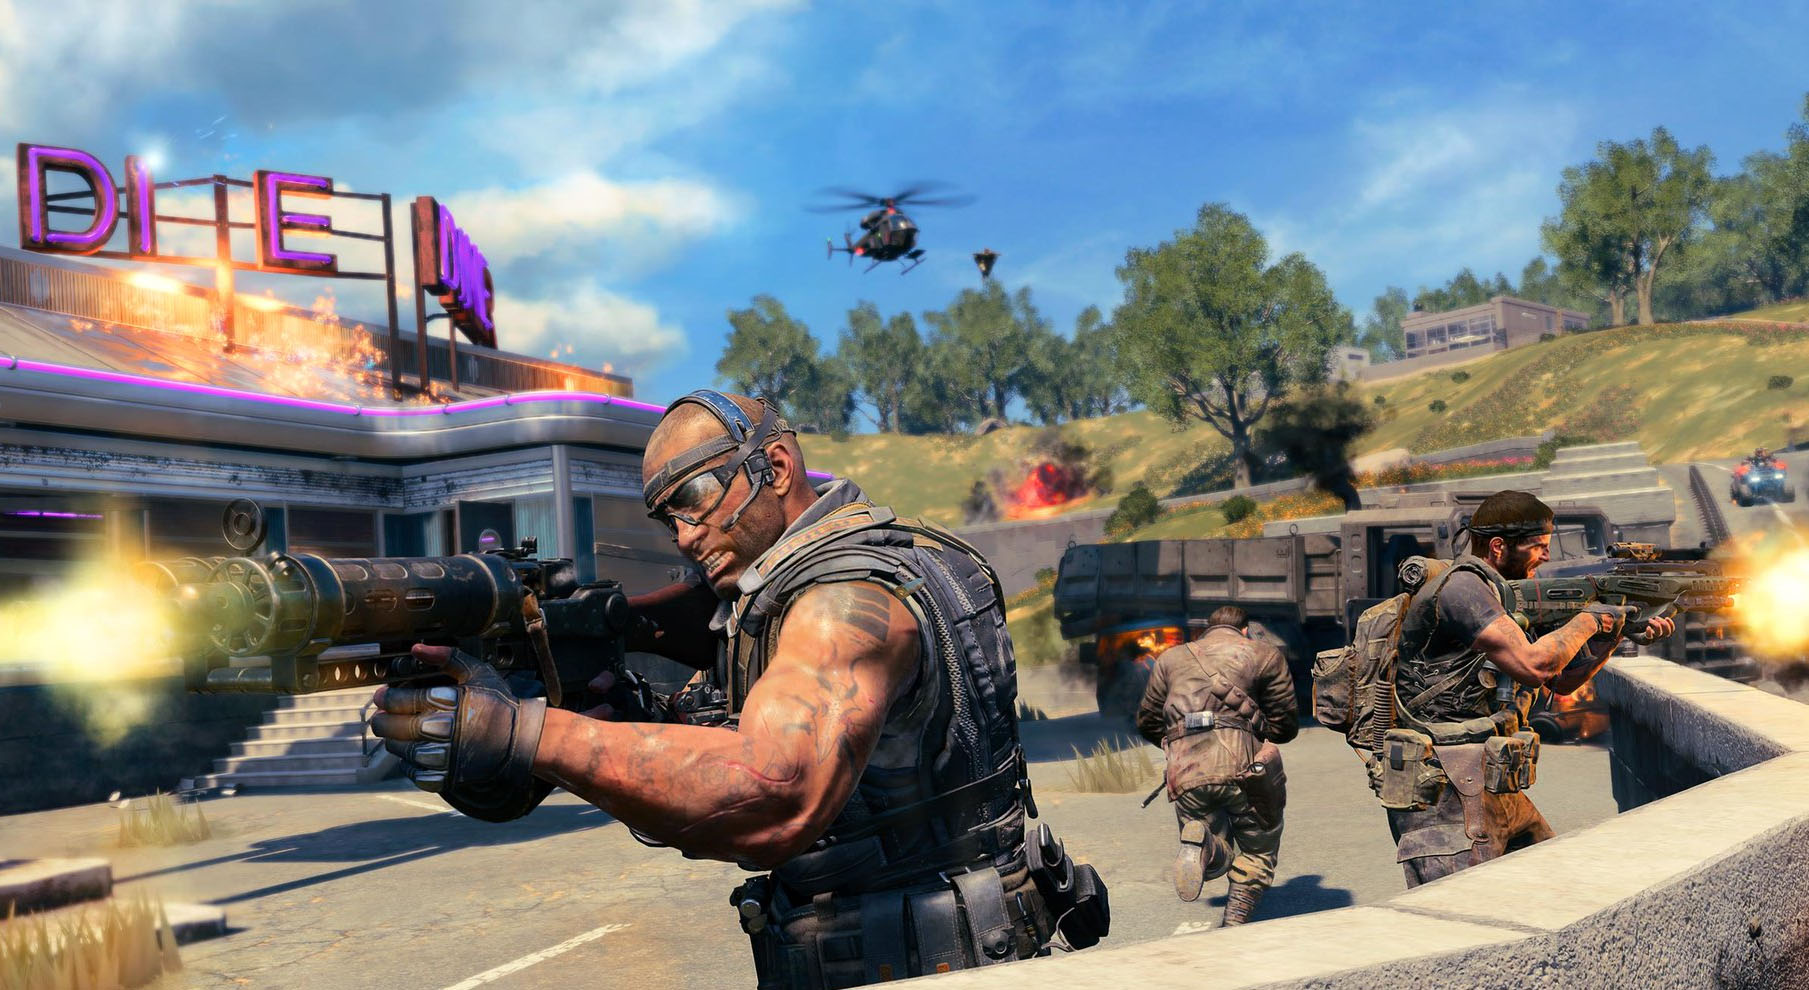 Black Ops 4's battle royale mode will be capped at 120 fps at launch